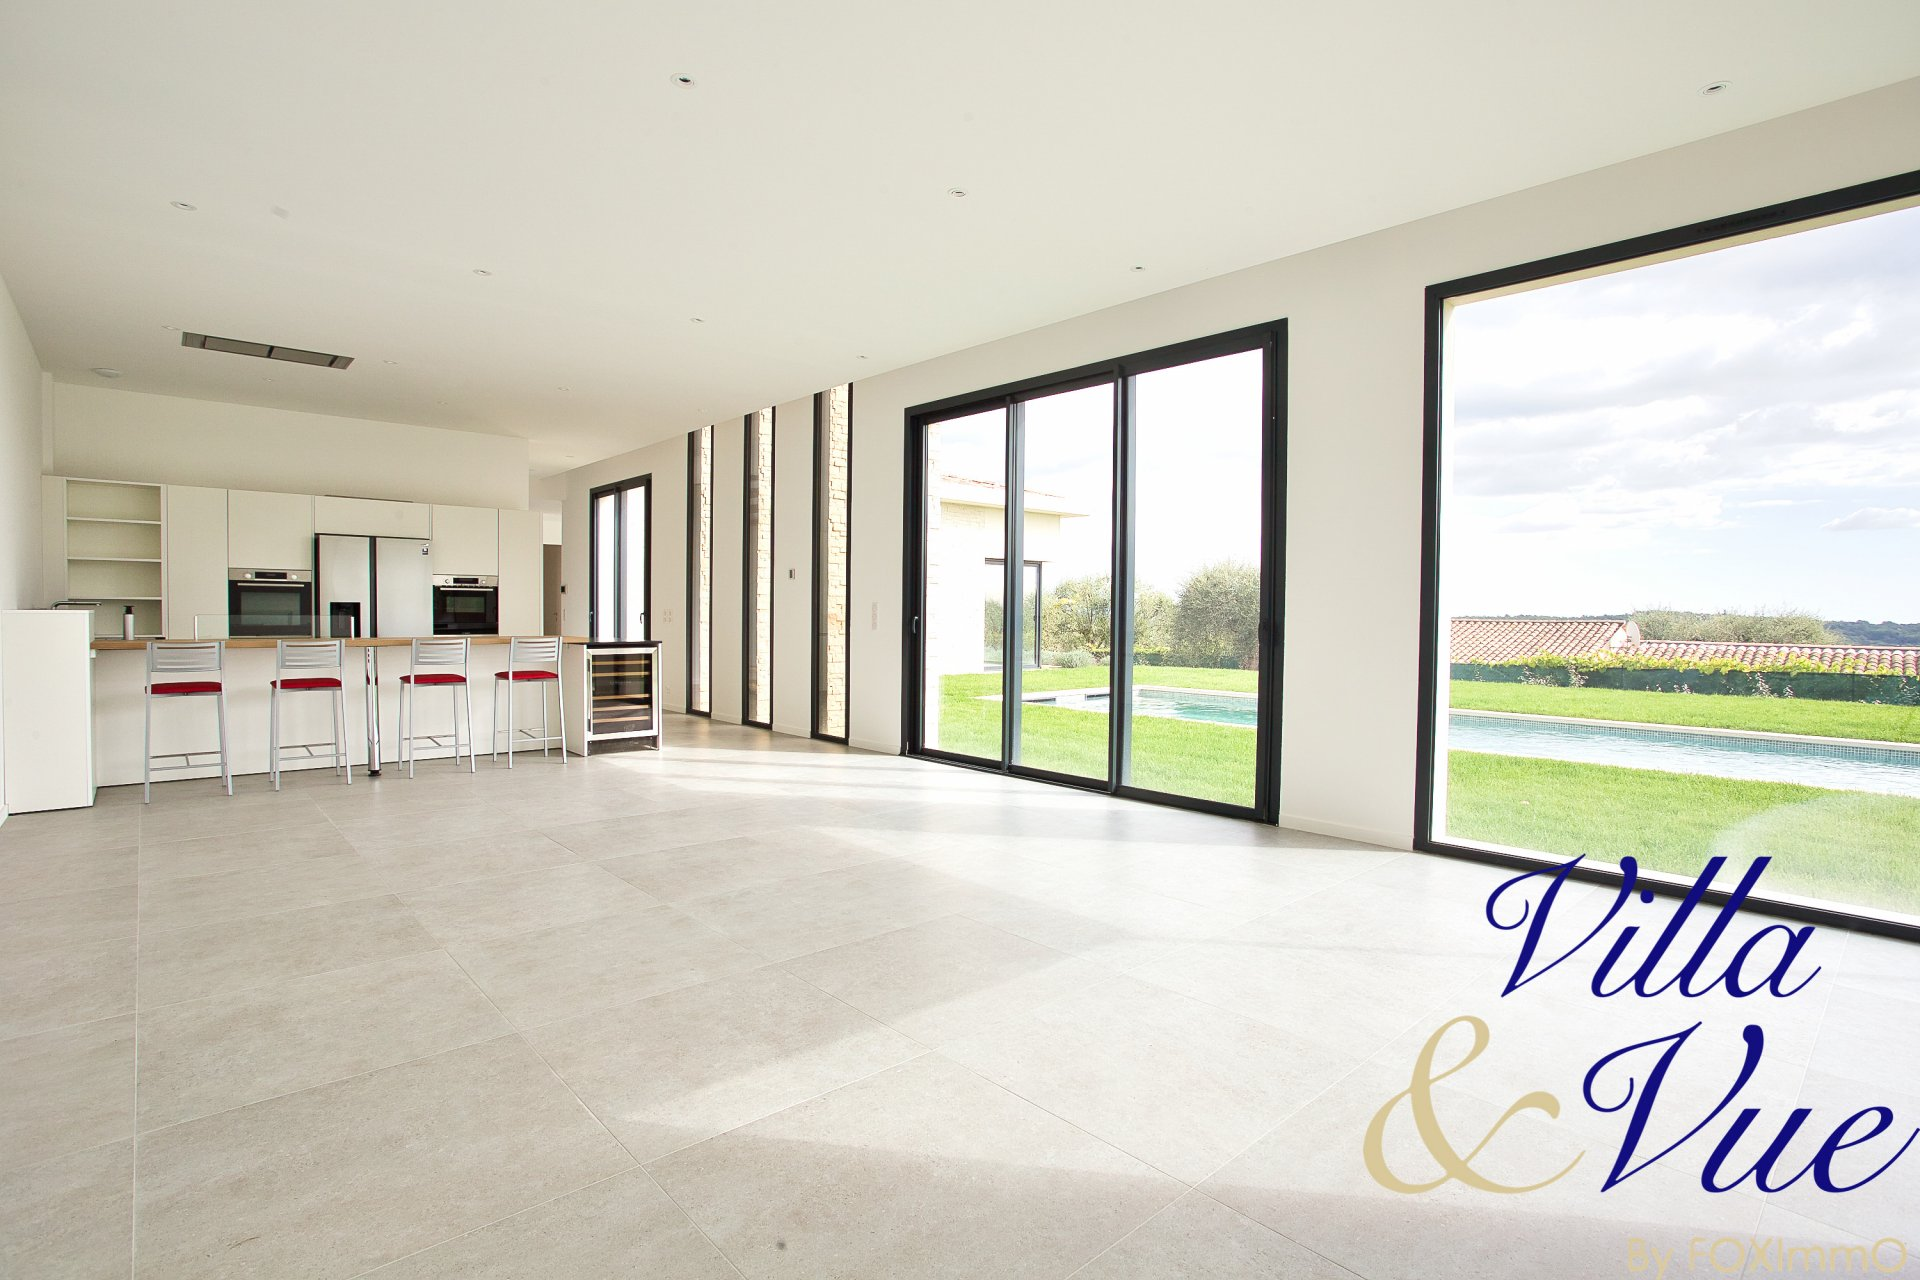 For sale beautiful new contemporary villa of 250 m² in absolute calm